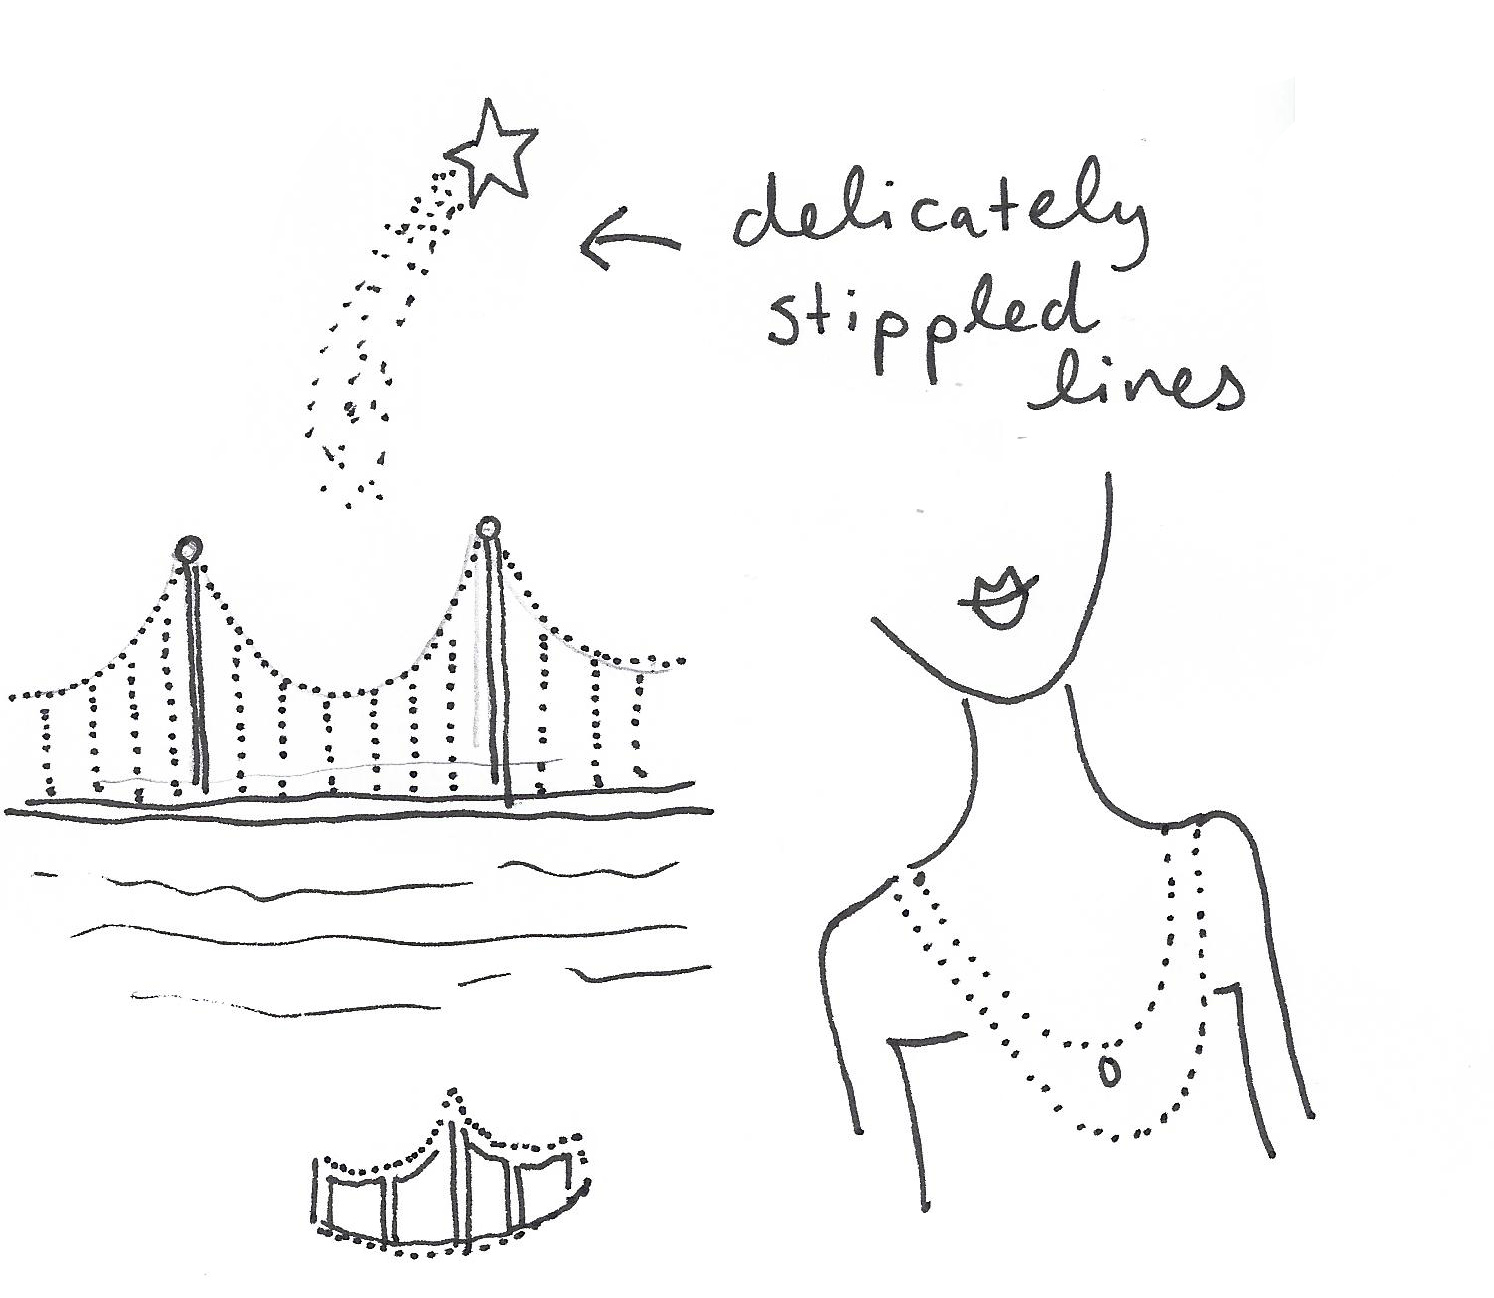 Dots are a great pen stroke for your illustrations